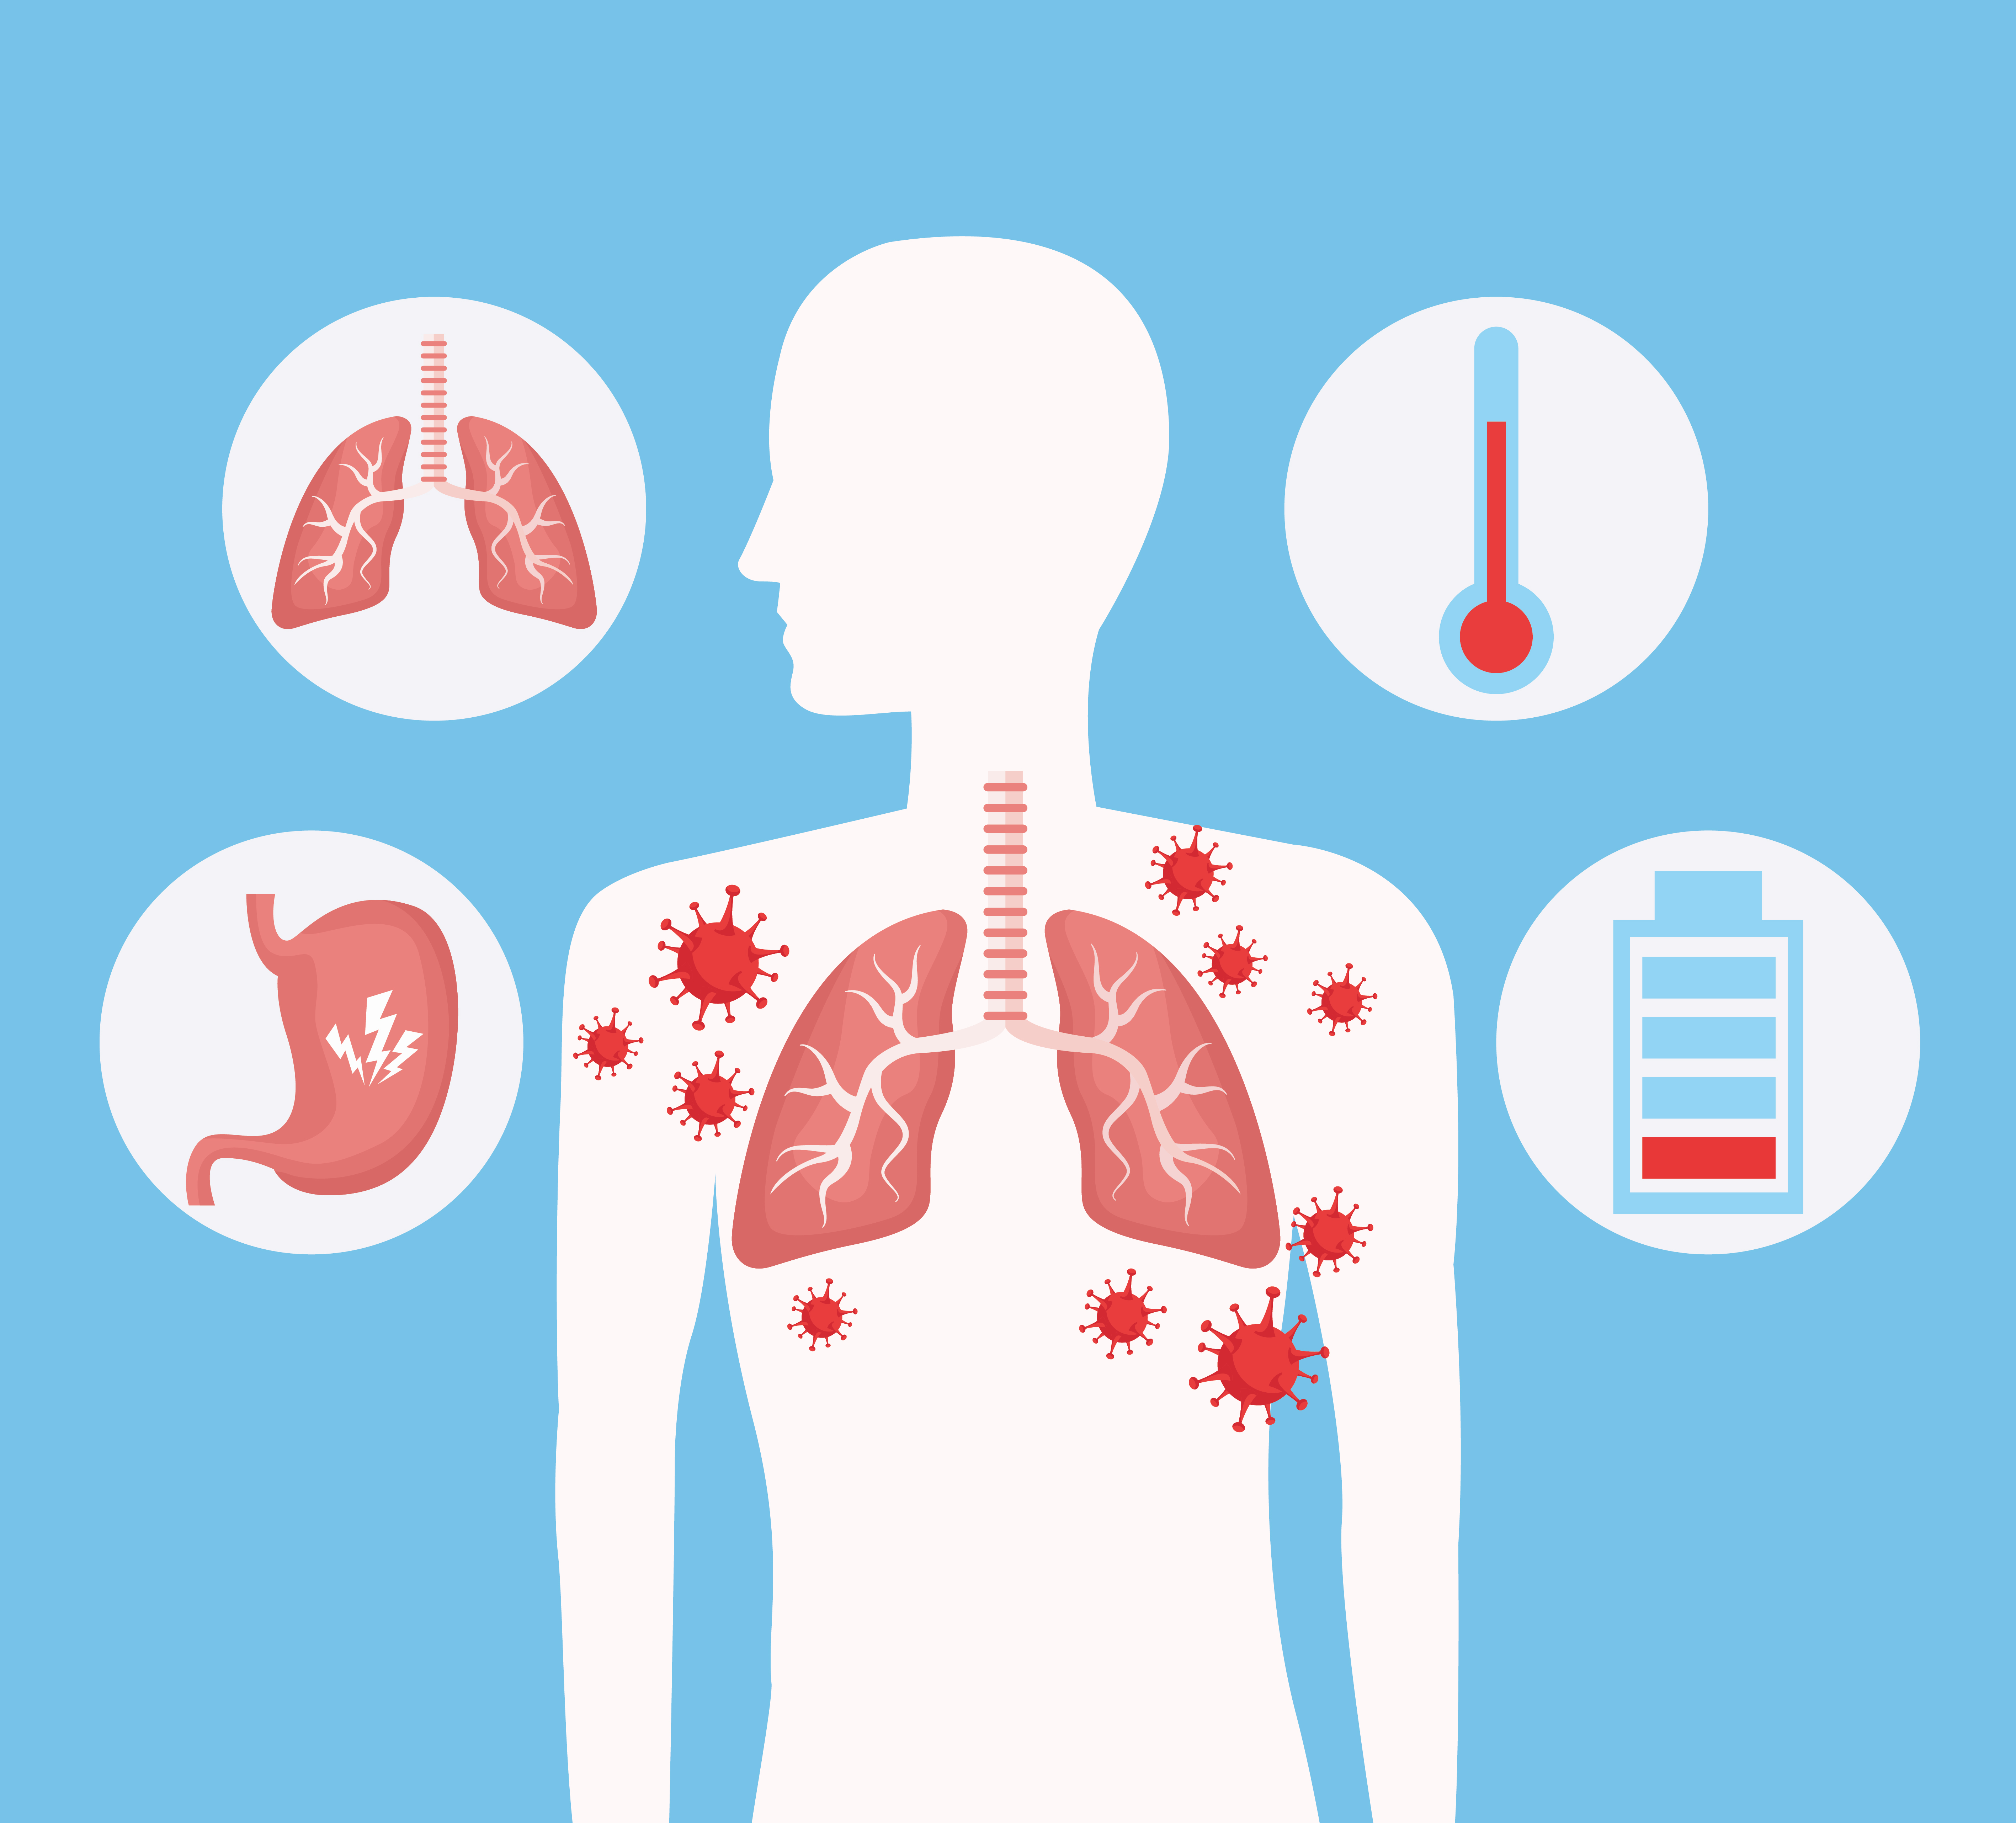 Human silhouette with lungs and COVID 19 icons set